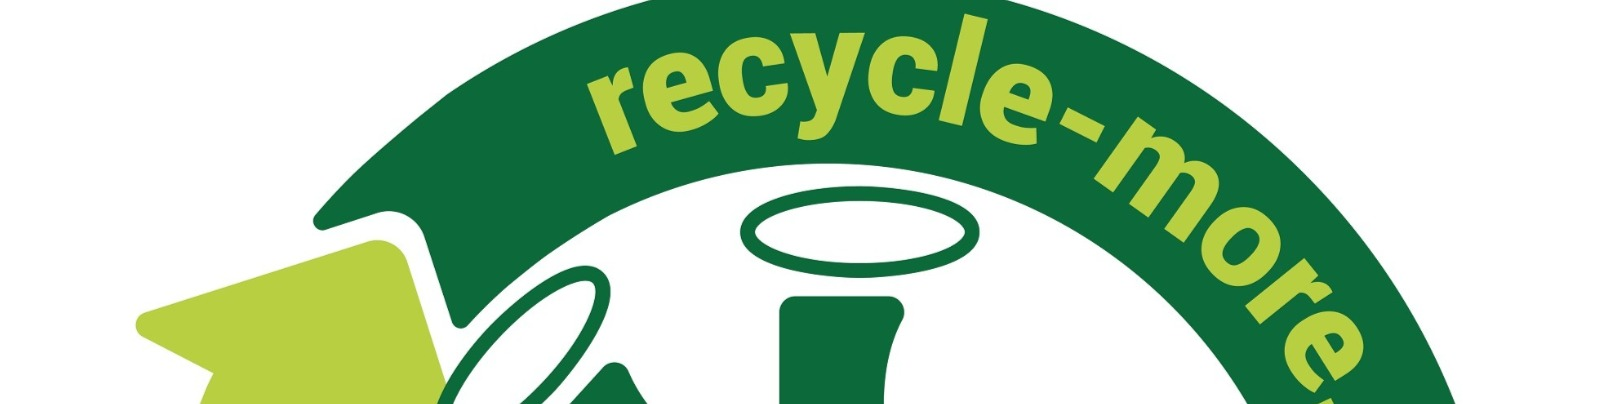 recycle-more Logo